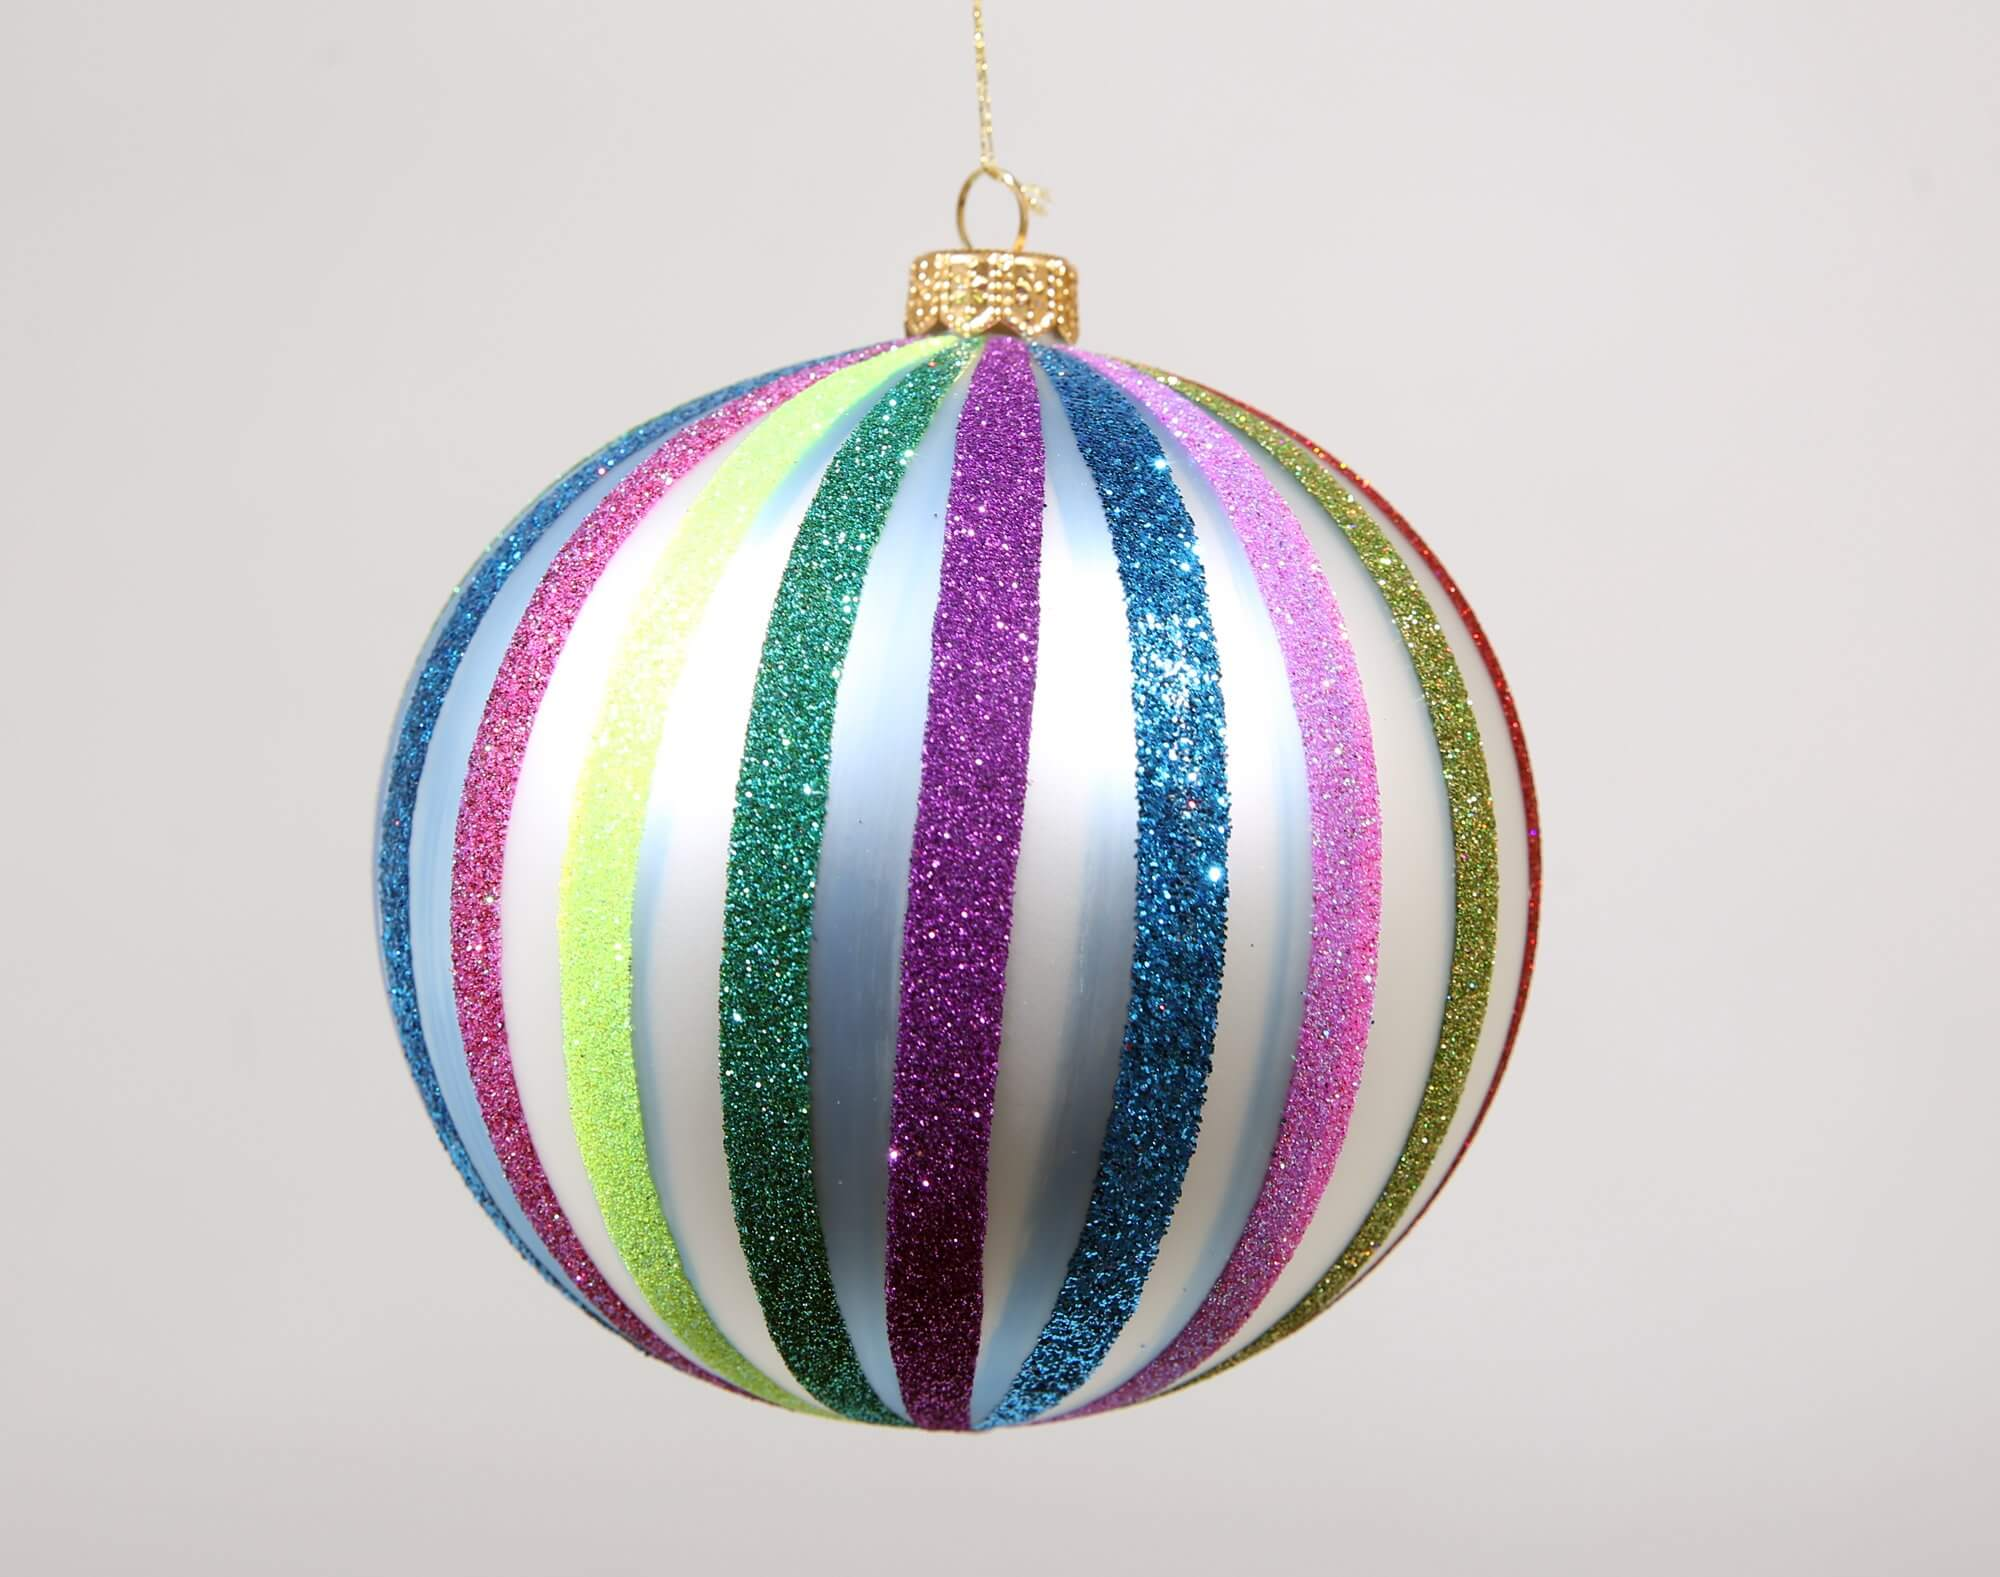 Multistripe ornament